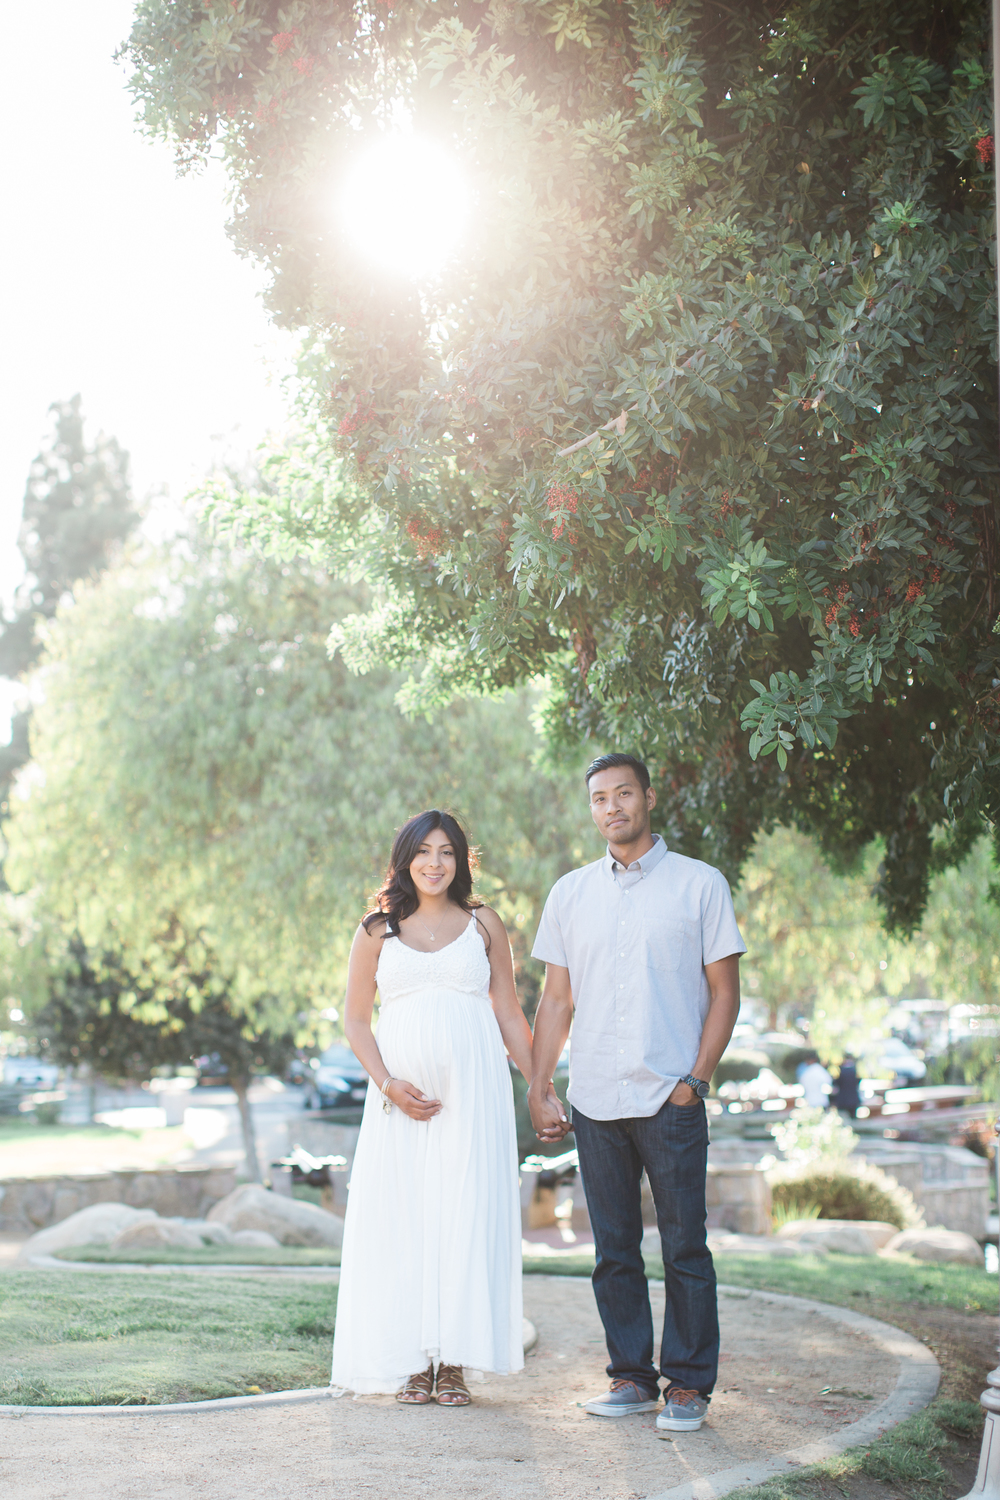 Marcella_Maternity_Cerritos_BrandonJFerlin_Photography-23.jpg